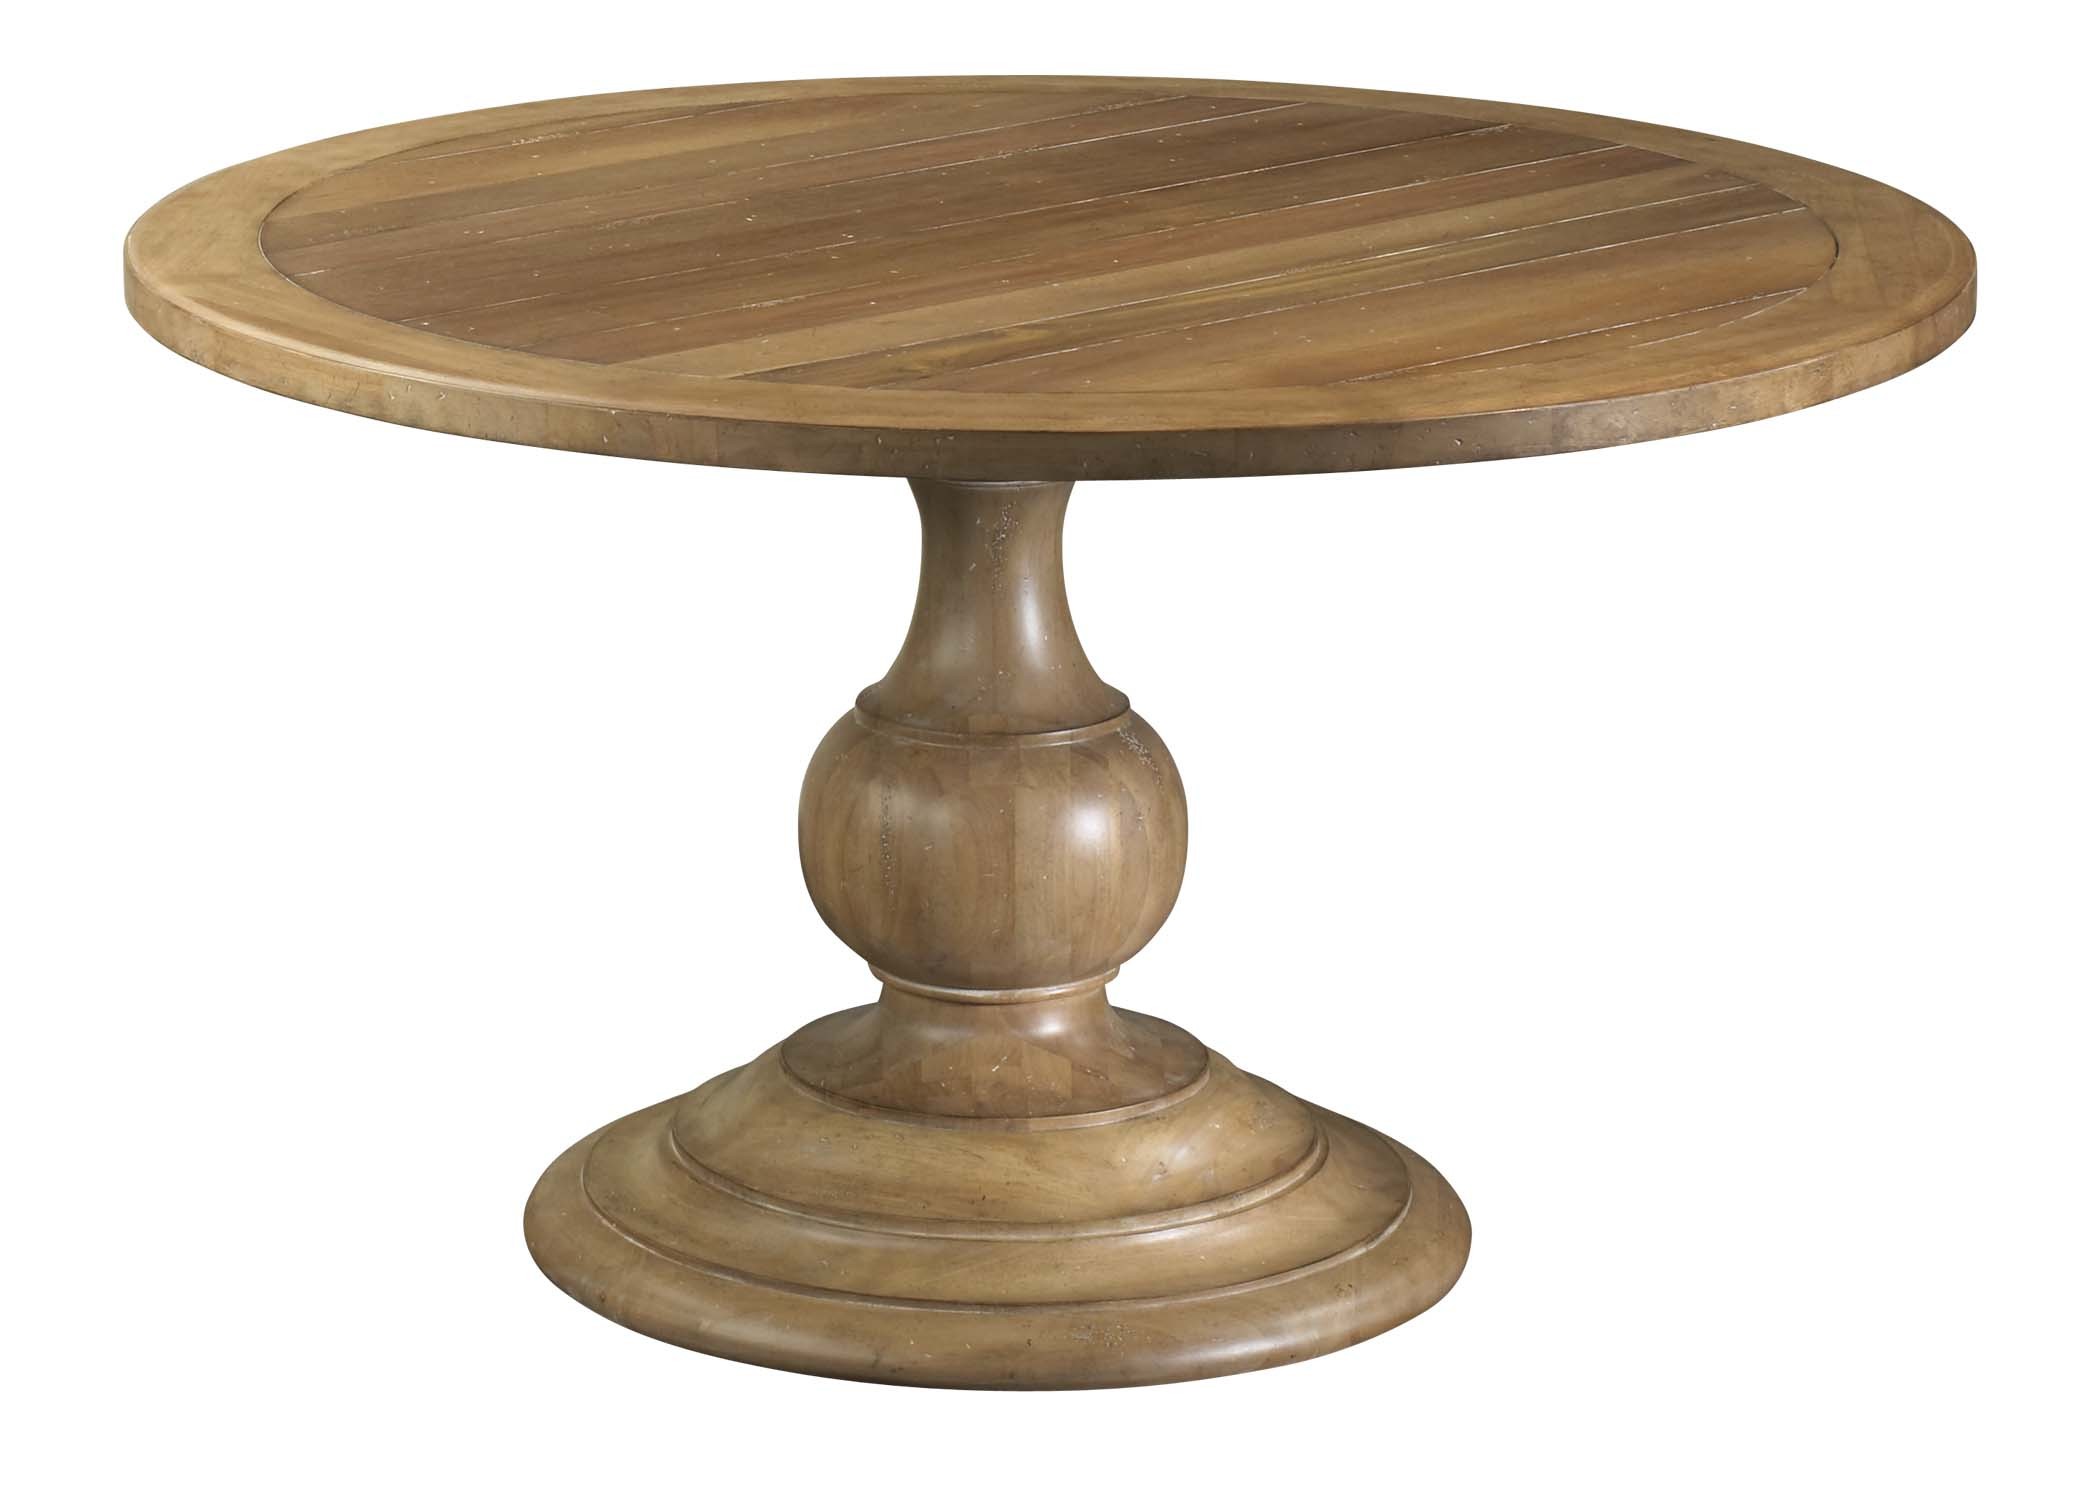 Best pedestal dining table and chair for dining room with round pedestal dining table